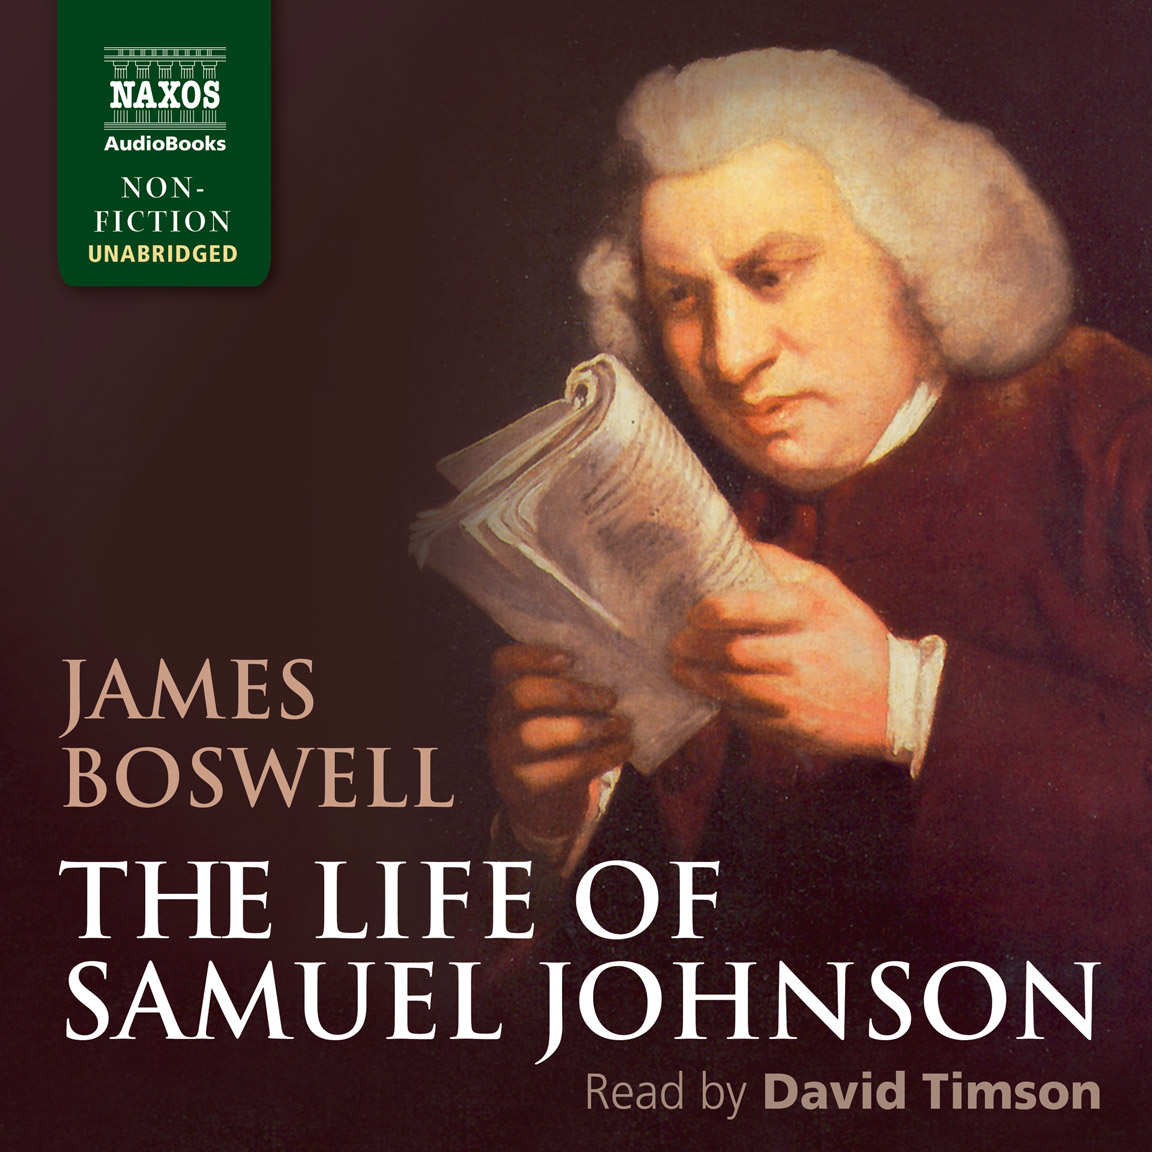 the similarities of david garricks and samuel johnsons life story and success Samuel johnson essay examples 14 total results the stories that readers can related with 906 words  the similarities of david garrick's and samuel johnson's life story and success 1,592 words 4 pages.